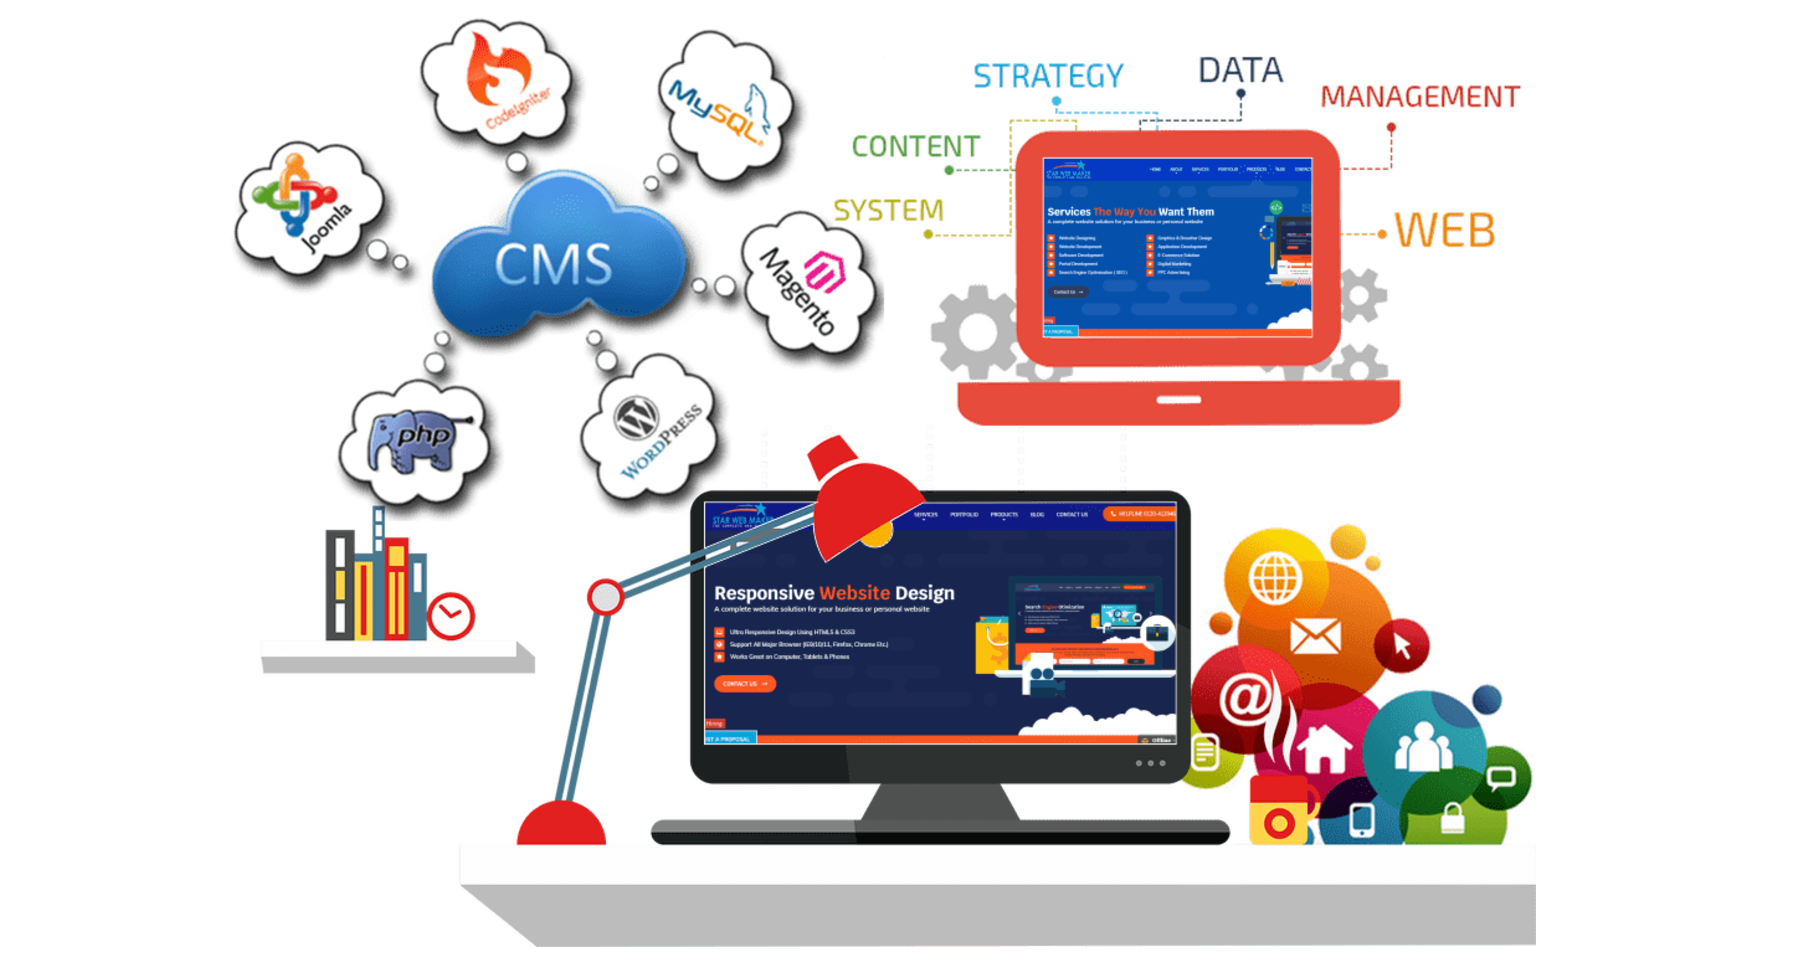 At TECH GURU IT SOLUTIONS. we are a leading WordPress development company that creates stunning and robust websites for businesses of all types and sizes. With a huge client base spanning across industries, we take pride in the fact that we have provided 100% results and on-time delivery, every-time for all our clients. Our WordPress developer team consists of result-oriented professionals who make sure that they deliver unique websites that are custom-made to meet the specific business requirements of every client.   * WordPress Web Development  * WordPress eCommerce Development  * PSD To WordPress Conversion  * Migration And Update  * WordPress Customization  * Maintenance And Suppoprt